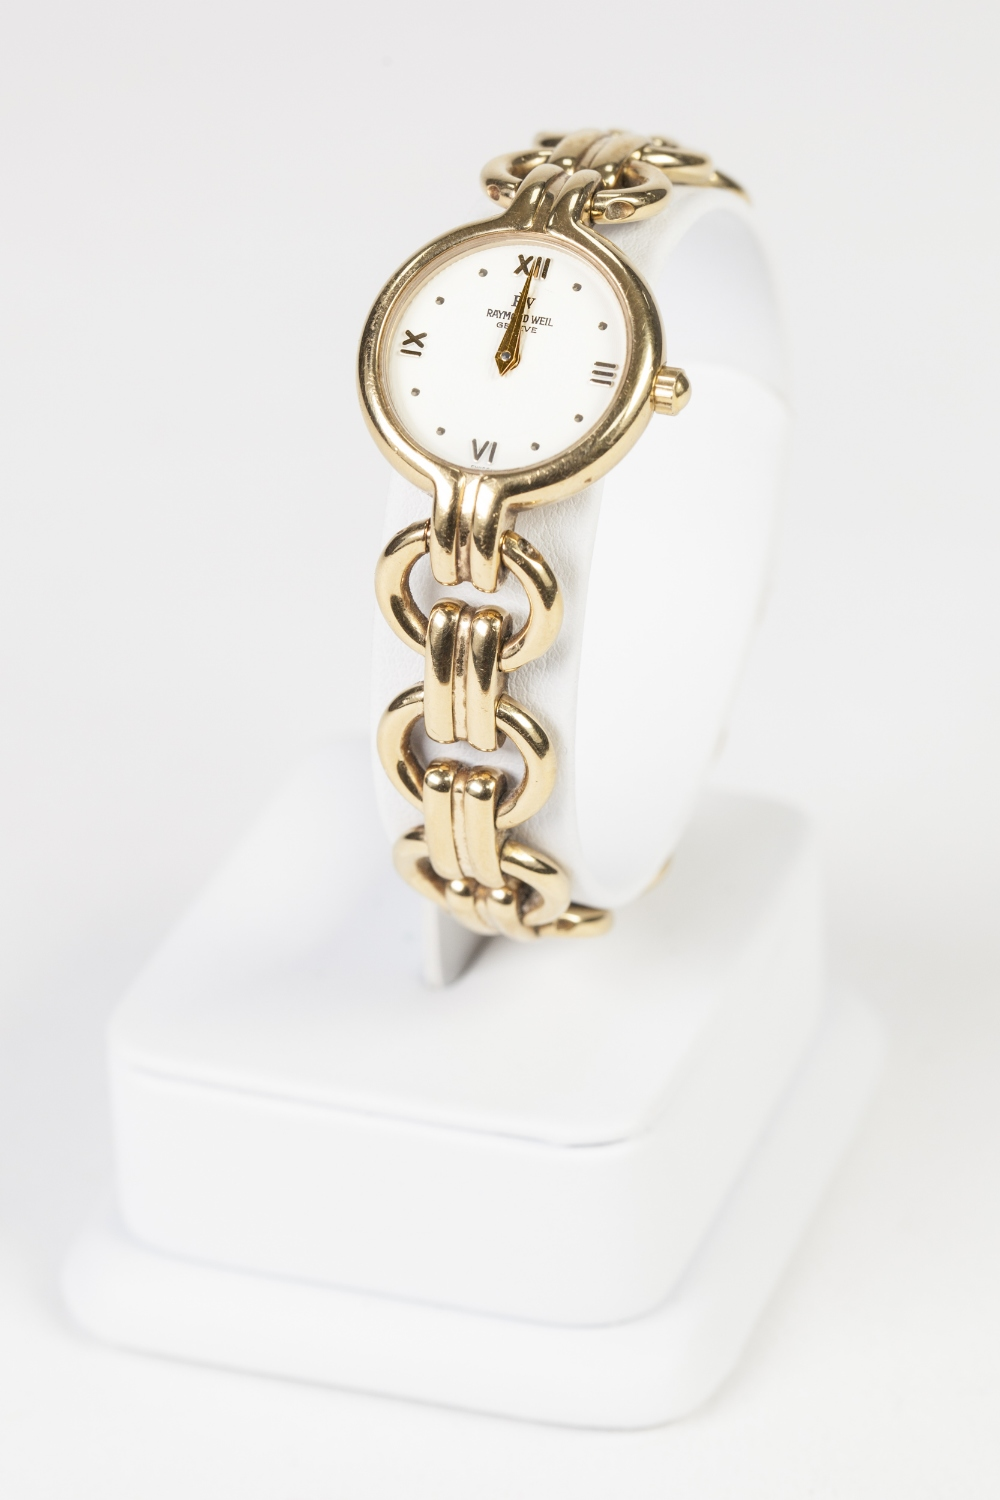 Lot 20 - LADY'S RAYMOND WEIL, GENEVE, GOLD PLATED WRIST WATCH, with quartz movement, small circular white